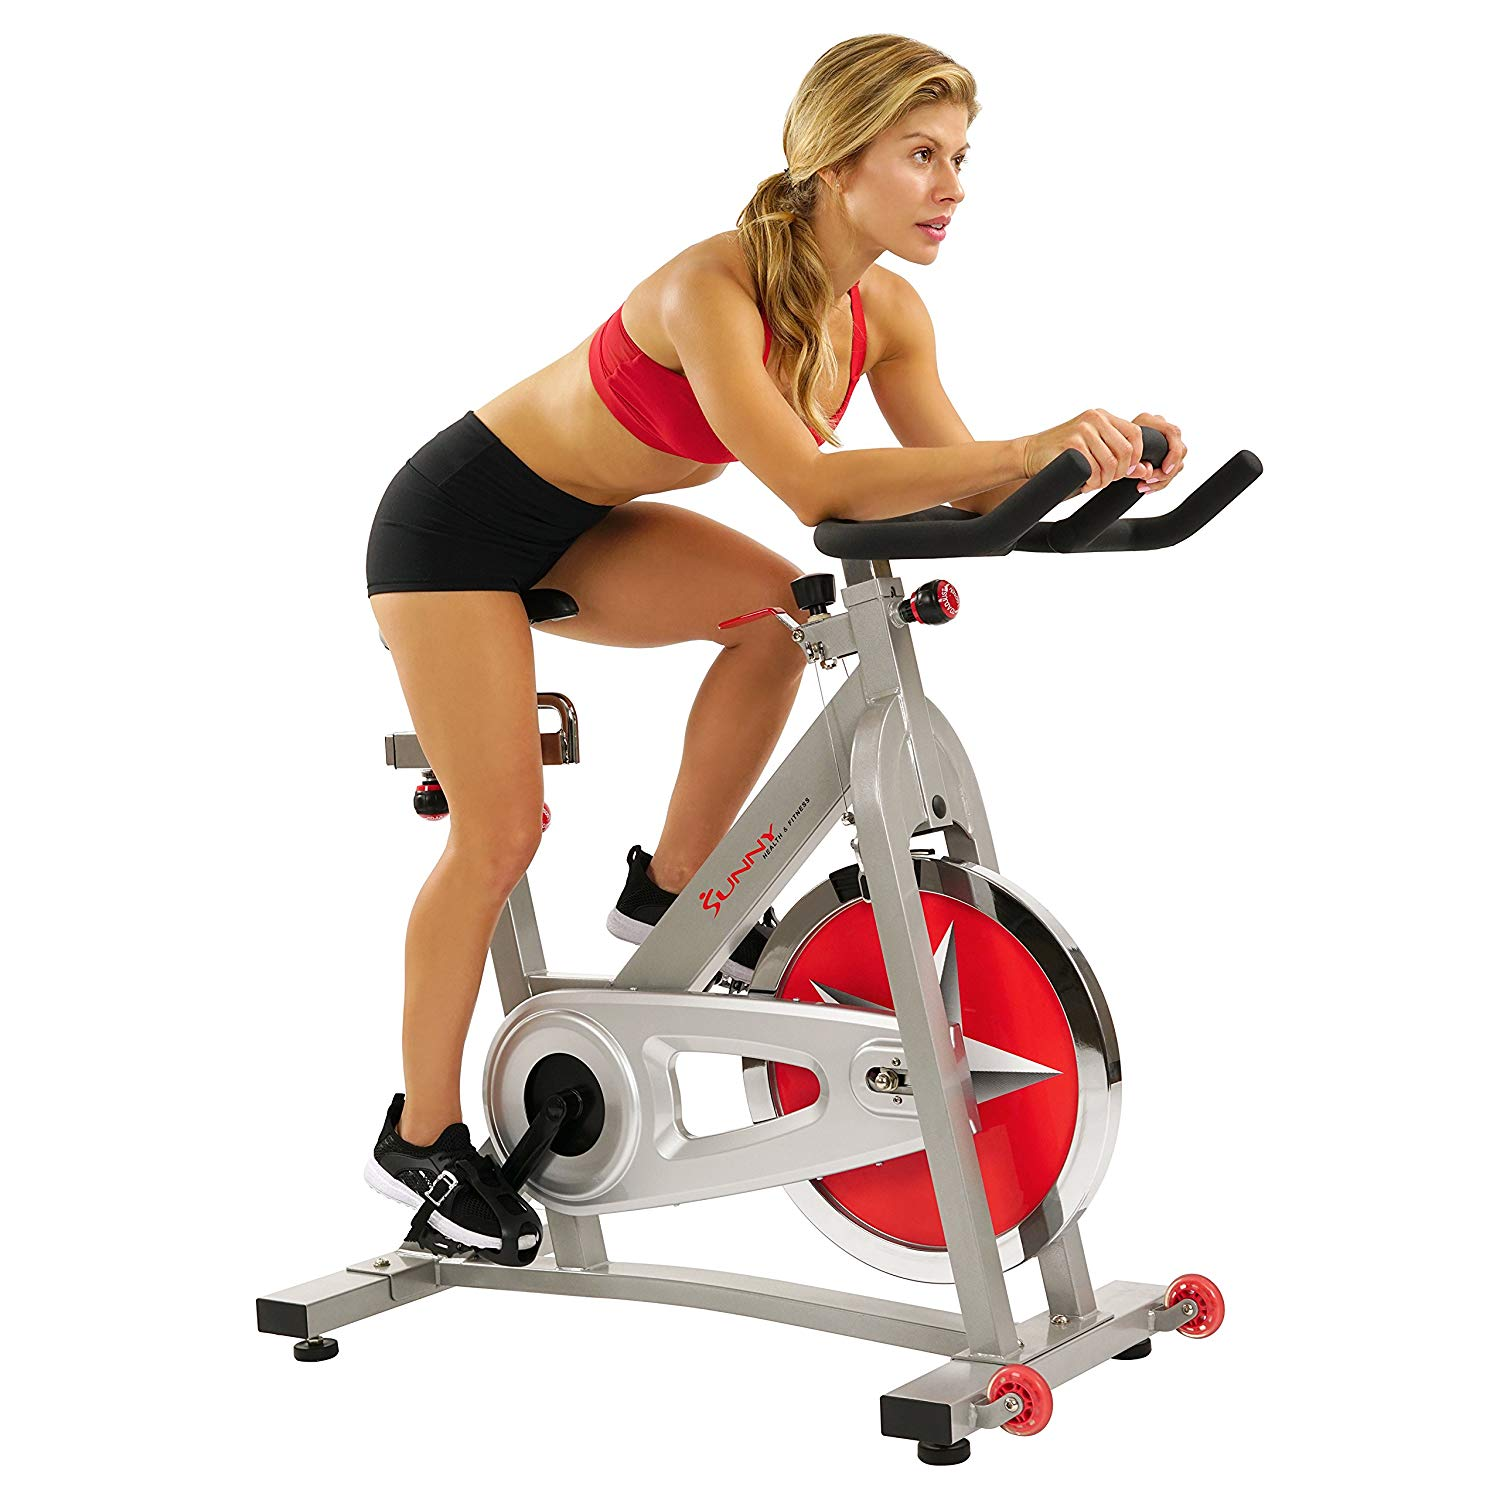 Sunny Health and Fitness Pro Indoor Cycling Peloton Bike